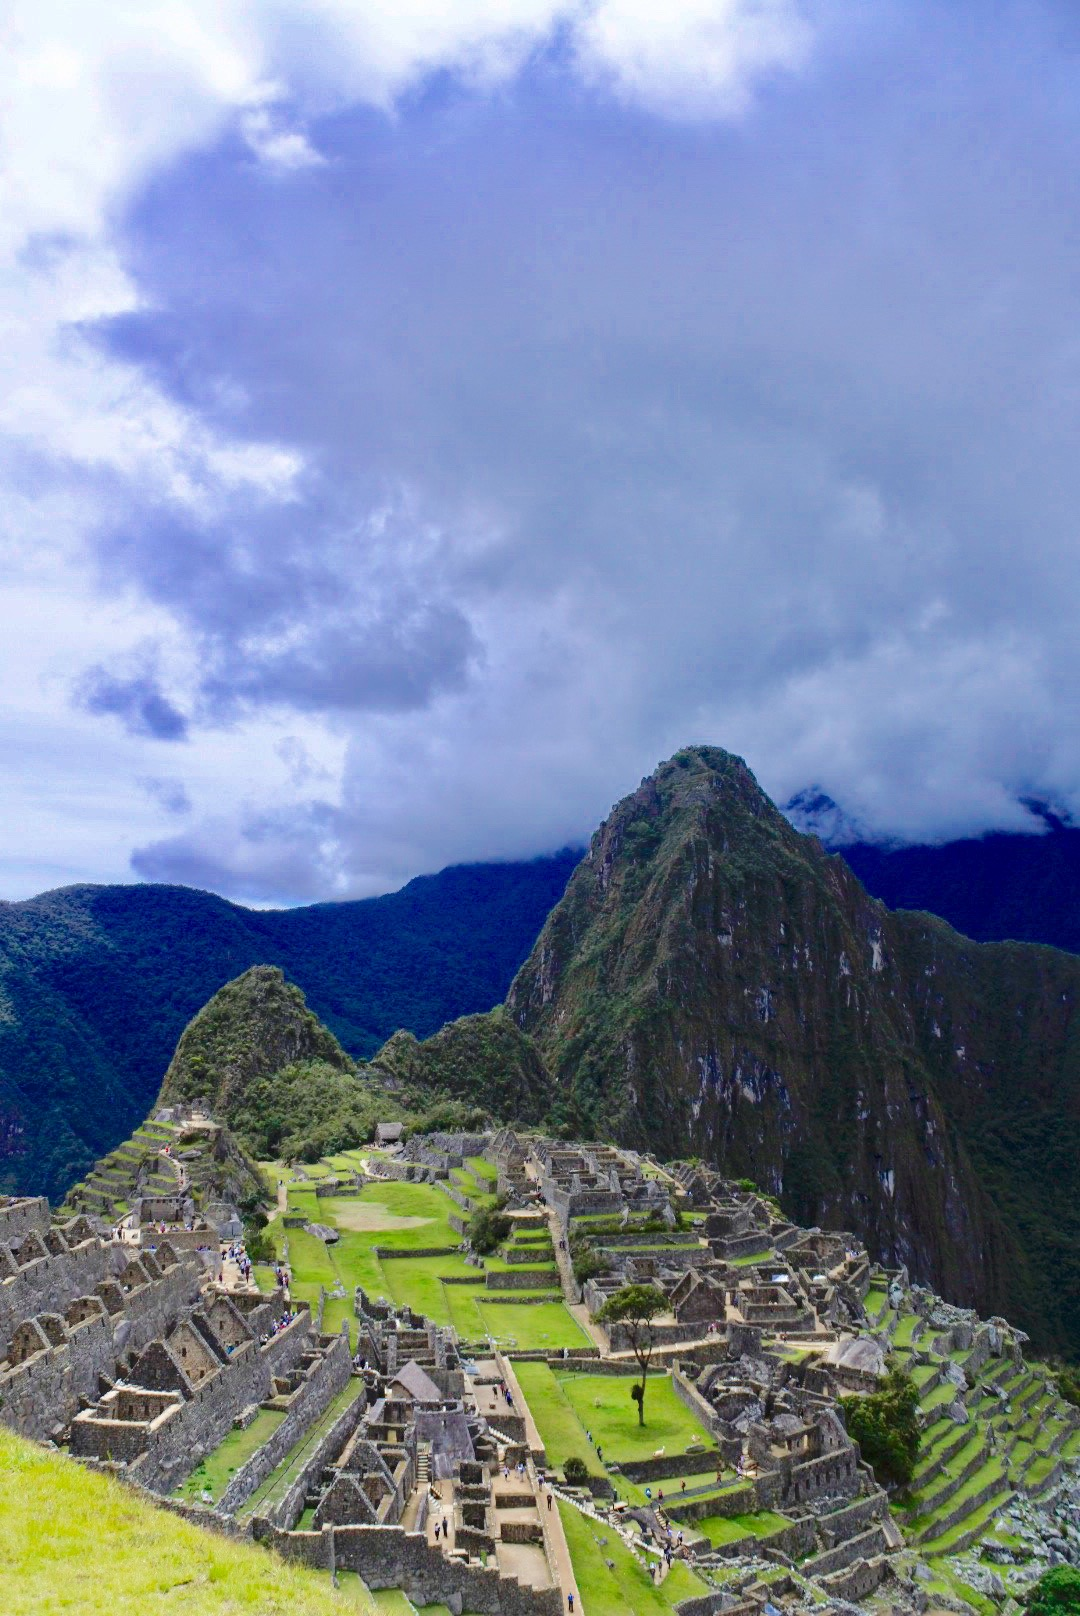 CUSCO - MACHU PICCHU - 6 days -5 nightDepartures: any day of the week, depending on flight availability. Hotel: 3* hotels in Lima, Cusco and OllantaytamboDestination: Lima, Cusco, Ollantaytambo and Machu Picchu.Level Activity: Soft to MediumDOWNLOAD BROCHURE